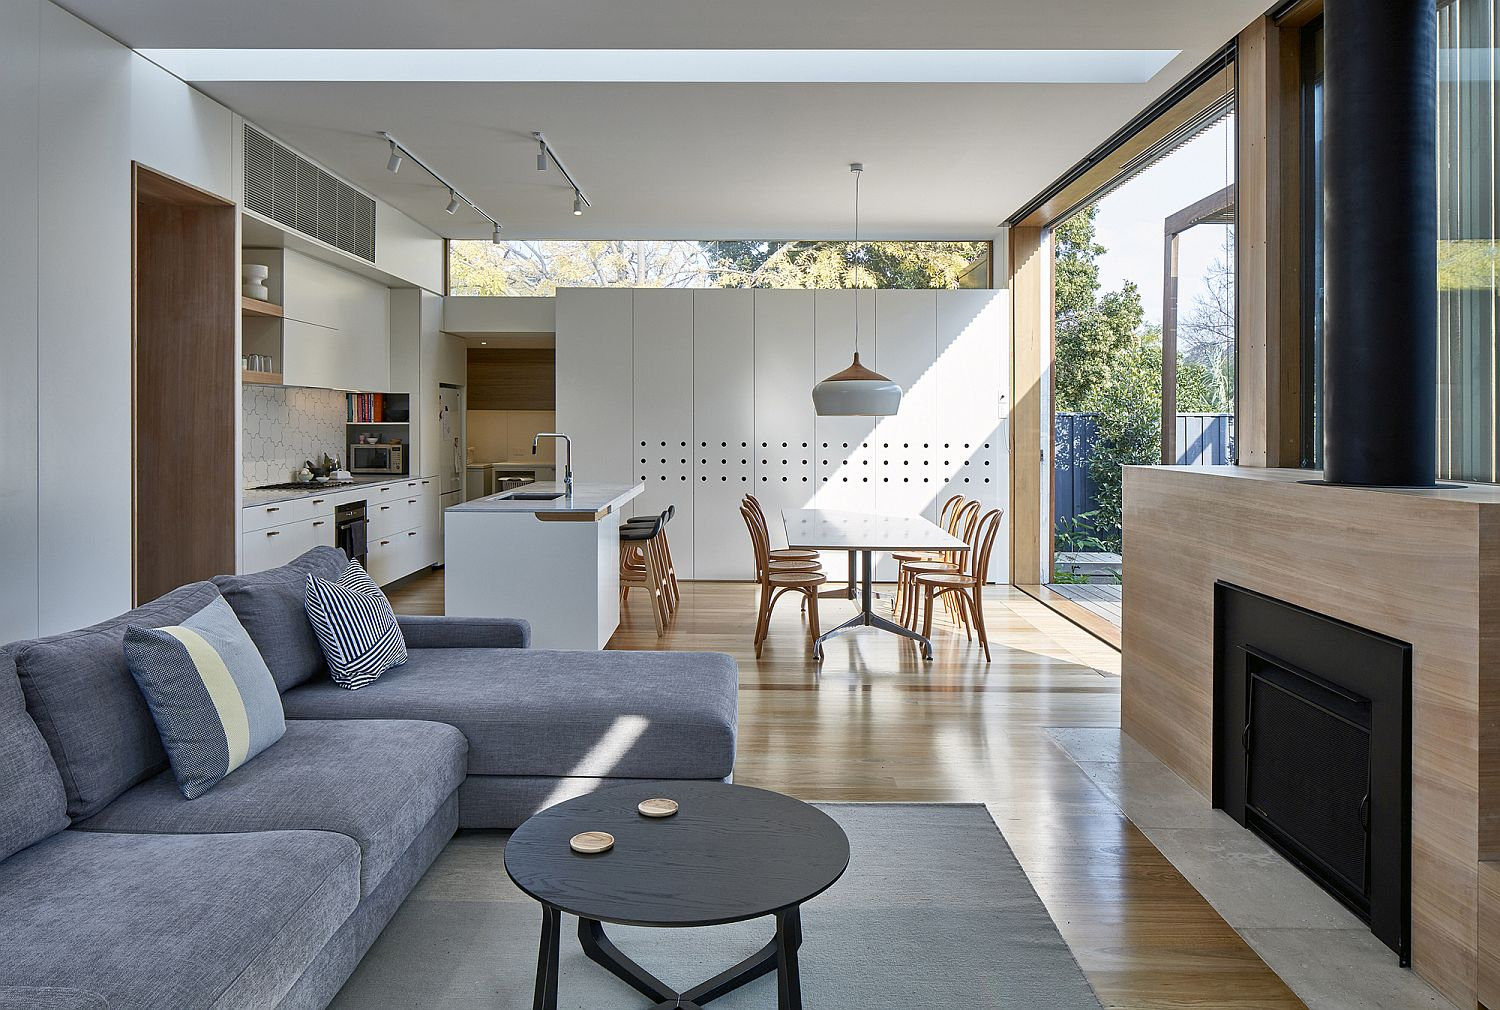 View of the new open plan living area, kitchen and dining inside the Aussie home